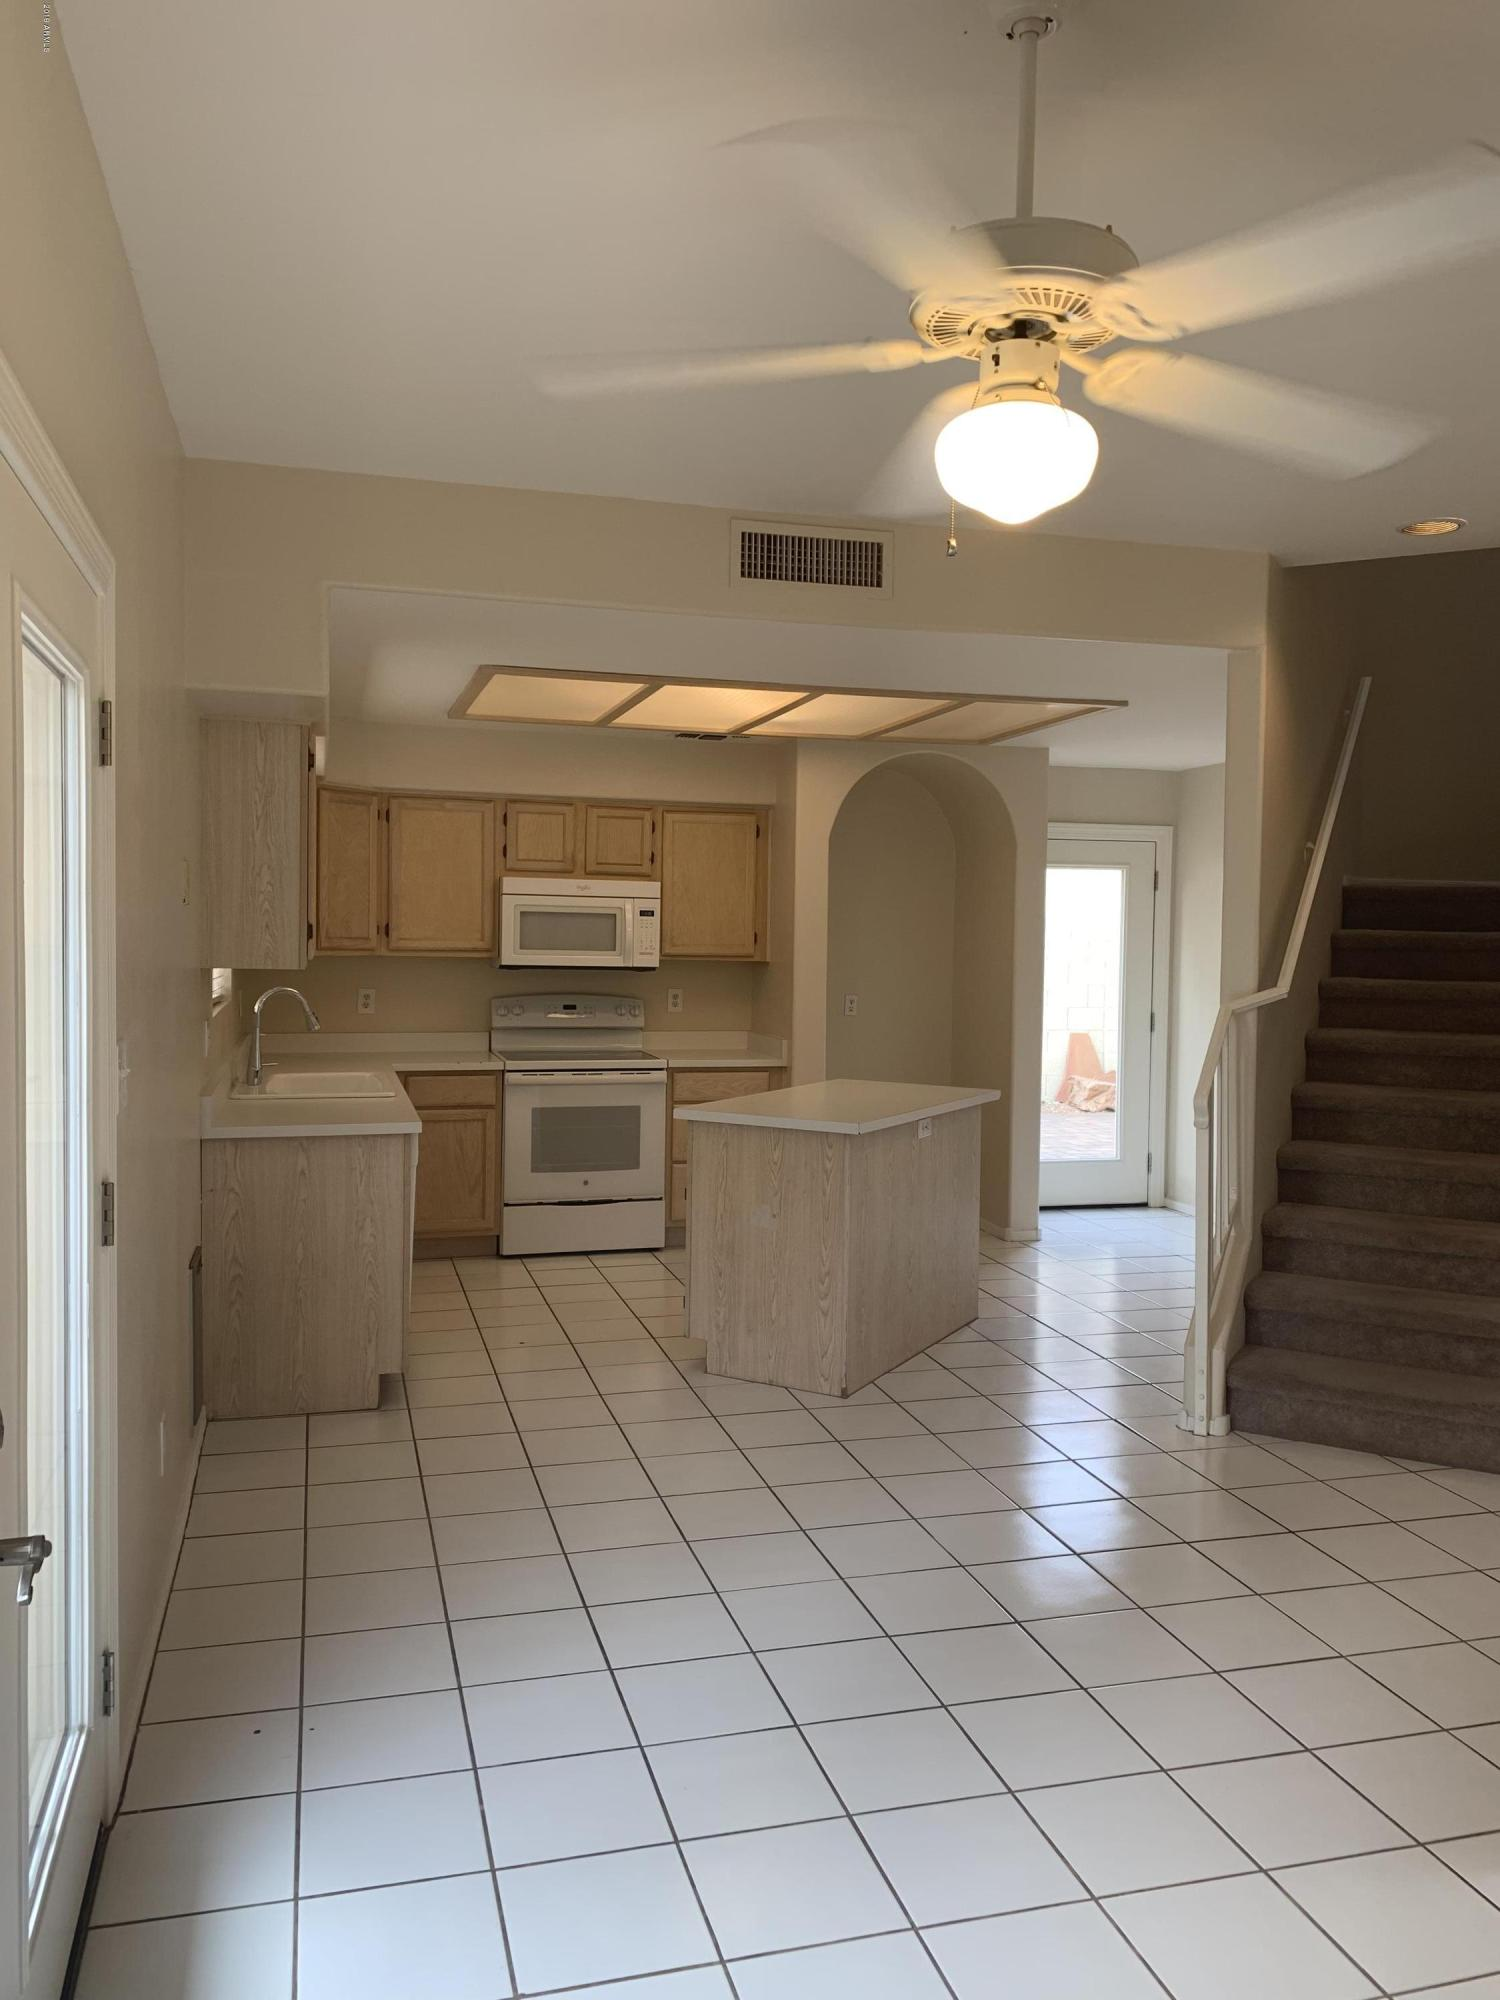 Photo of 8821 S 51ST Street #1, Phoenix, AZ 85044